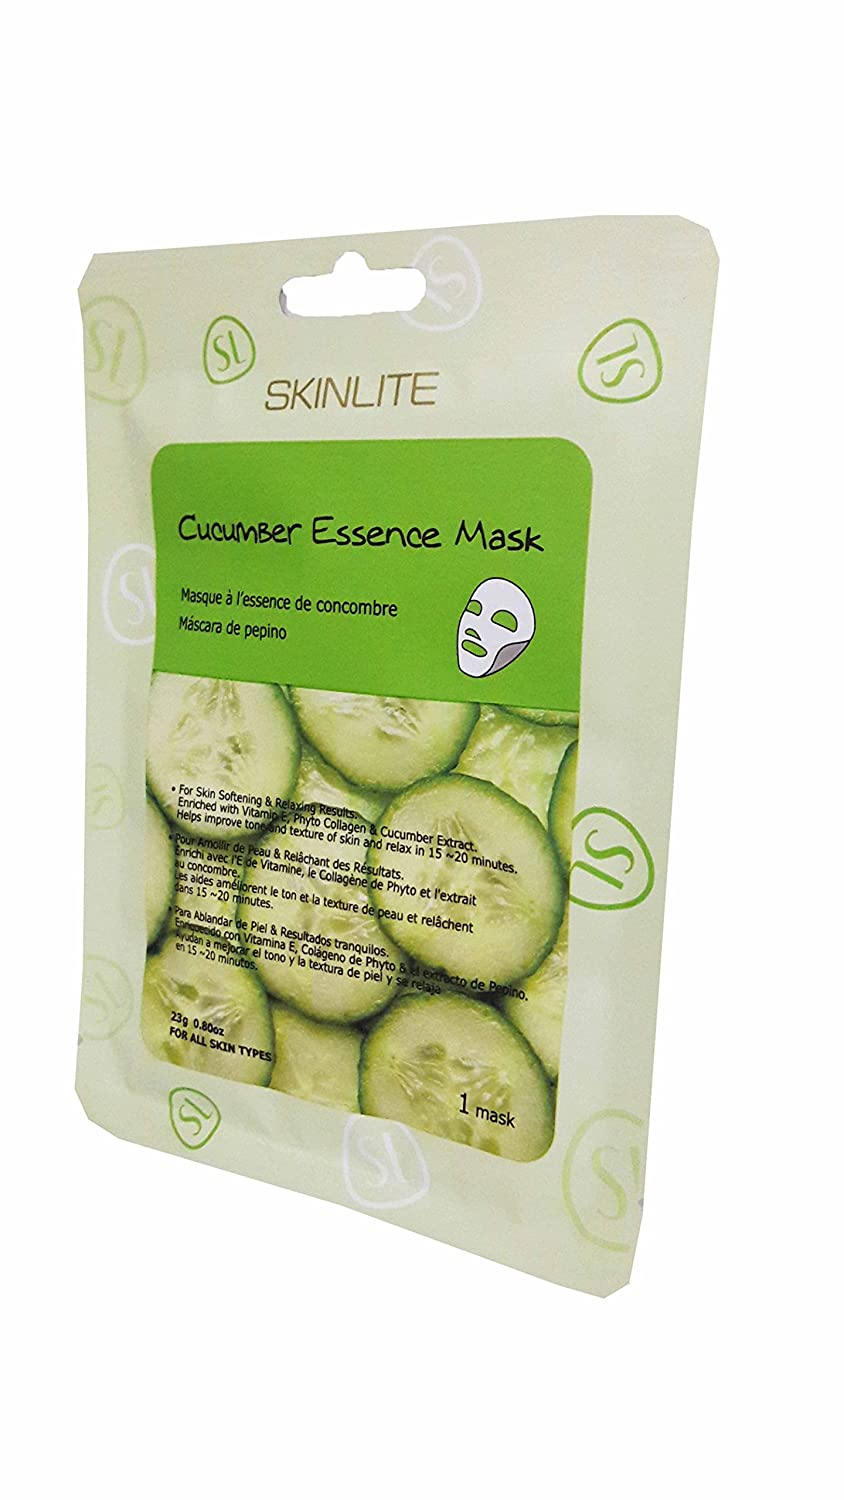 Amazon.com : 4 Packs of SKINLITE Cucumber Essence Mask, for Skin Softening & Relaxing Results. Enriched with Vitamin E, Phyto Collagen & Cucumber Extract., ...